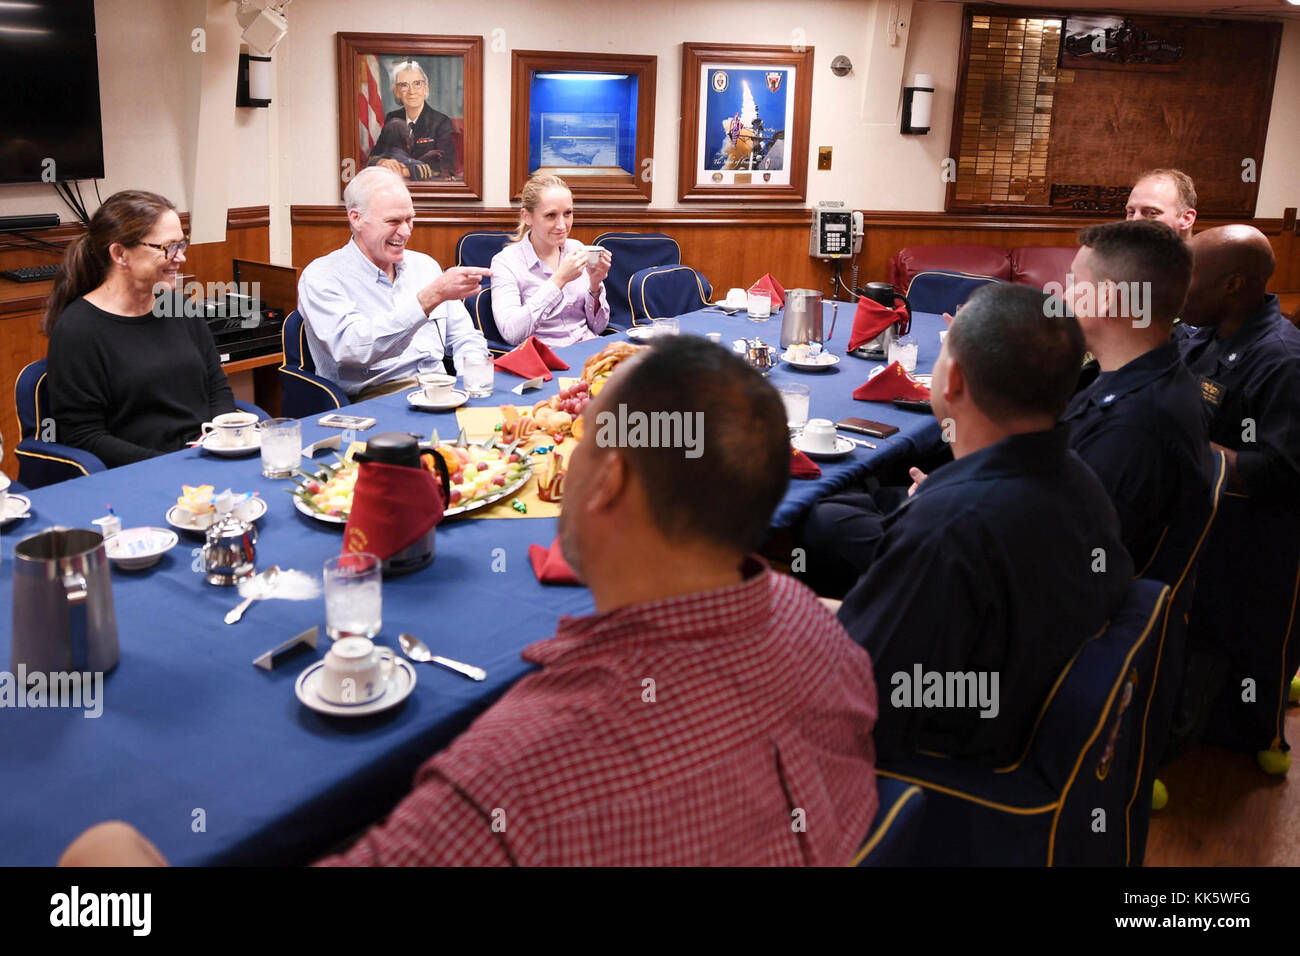 ARABIAN GULF (Nov. 23, 2017) Secretary of the Navy Richard V. Spencer speaks with command leadership in the wardroom - Stock Image